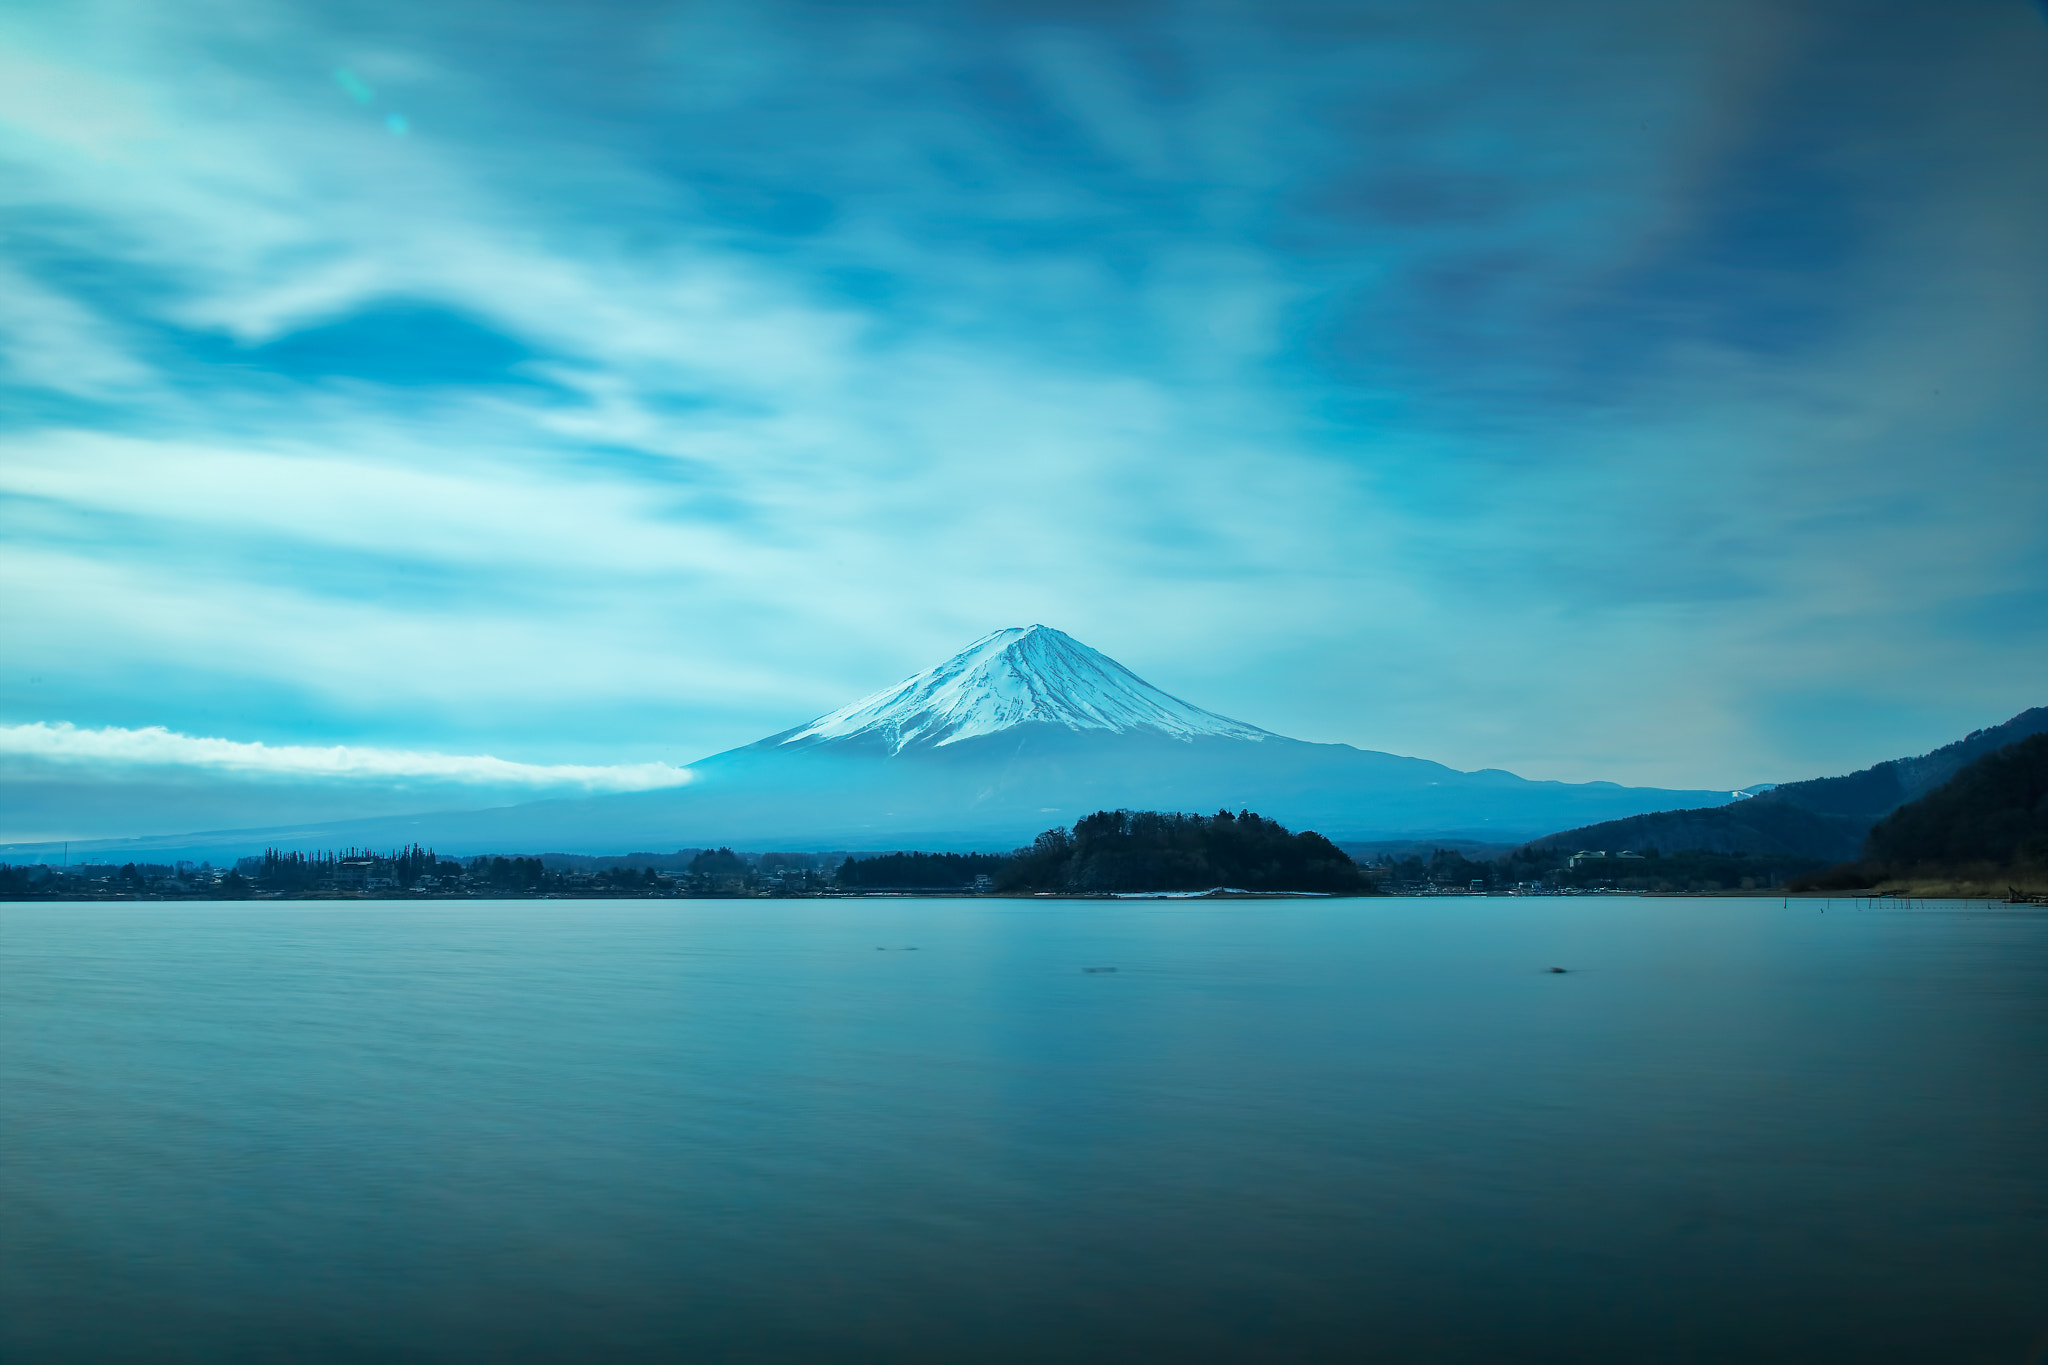 Photograph Mount Fuji by MIYAMOTO Y on 500px